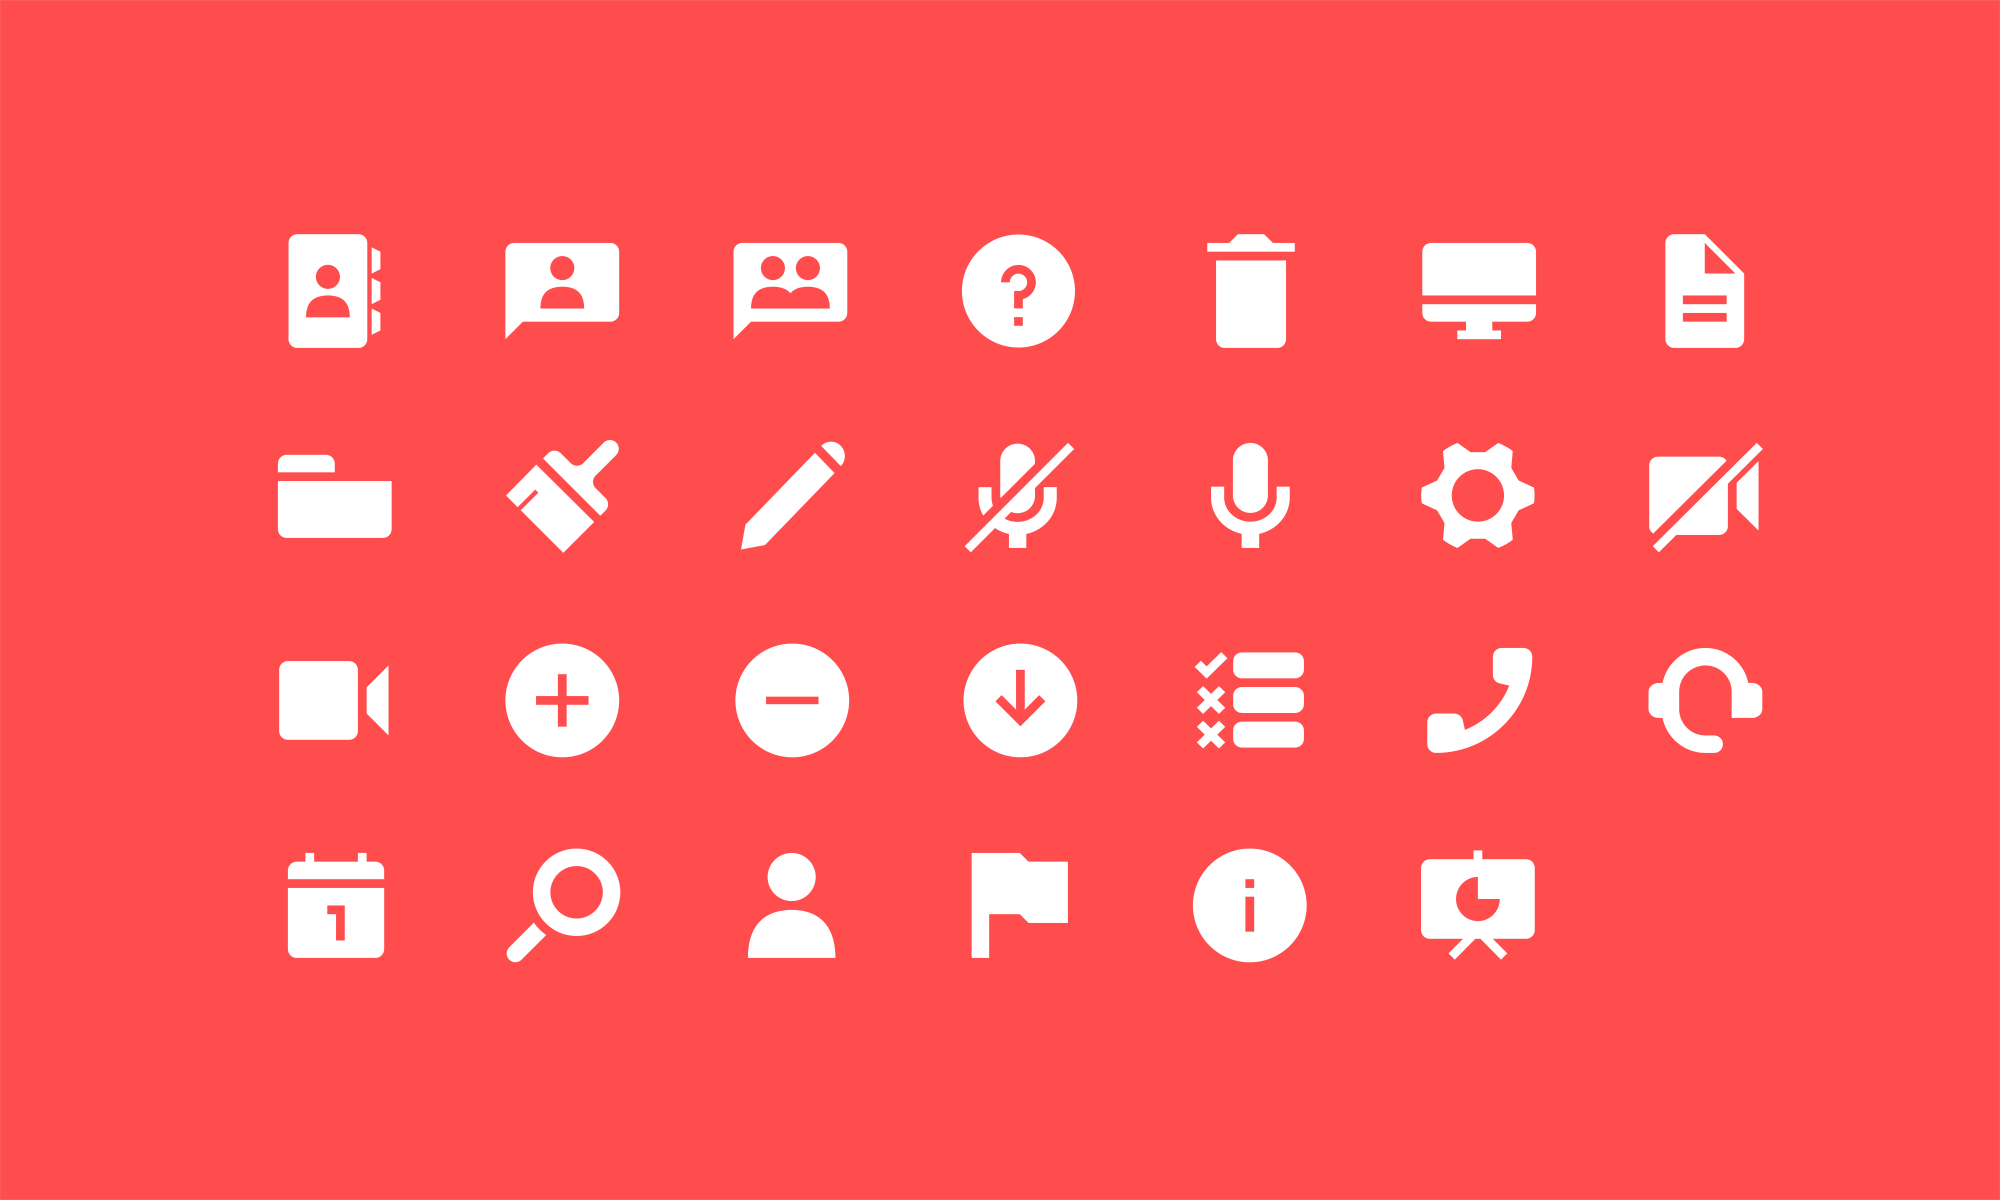 All of the Webinar icons